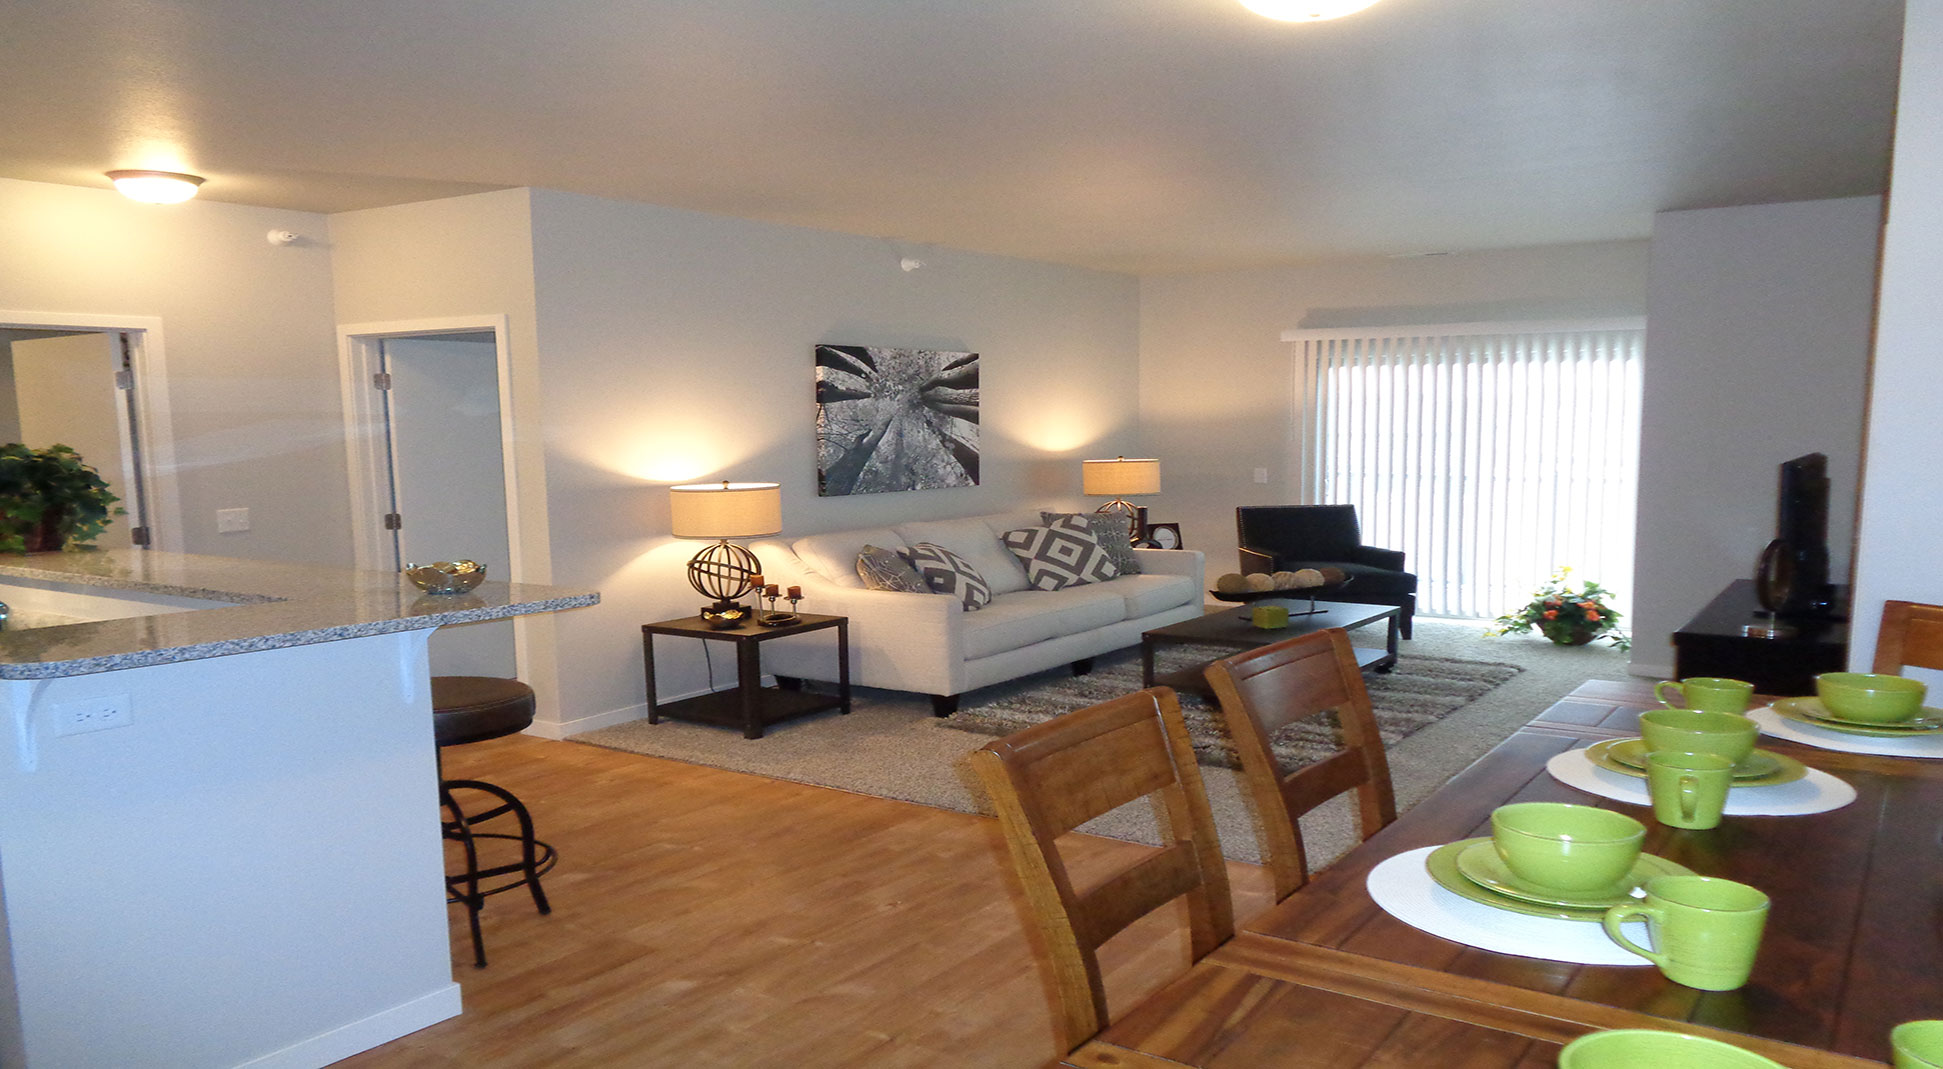 Minot homepagegallery 1 & North Highlands | Apartments in Minot ND